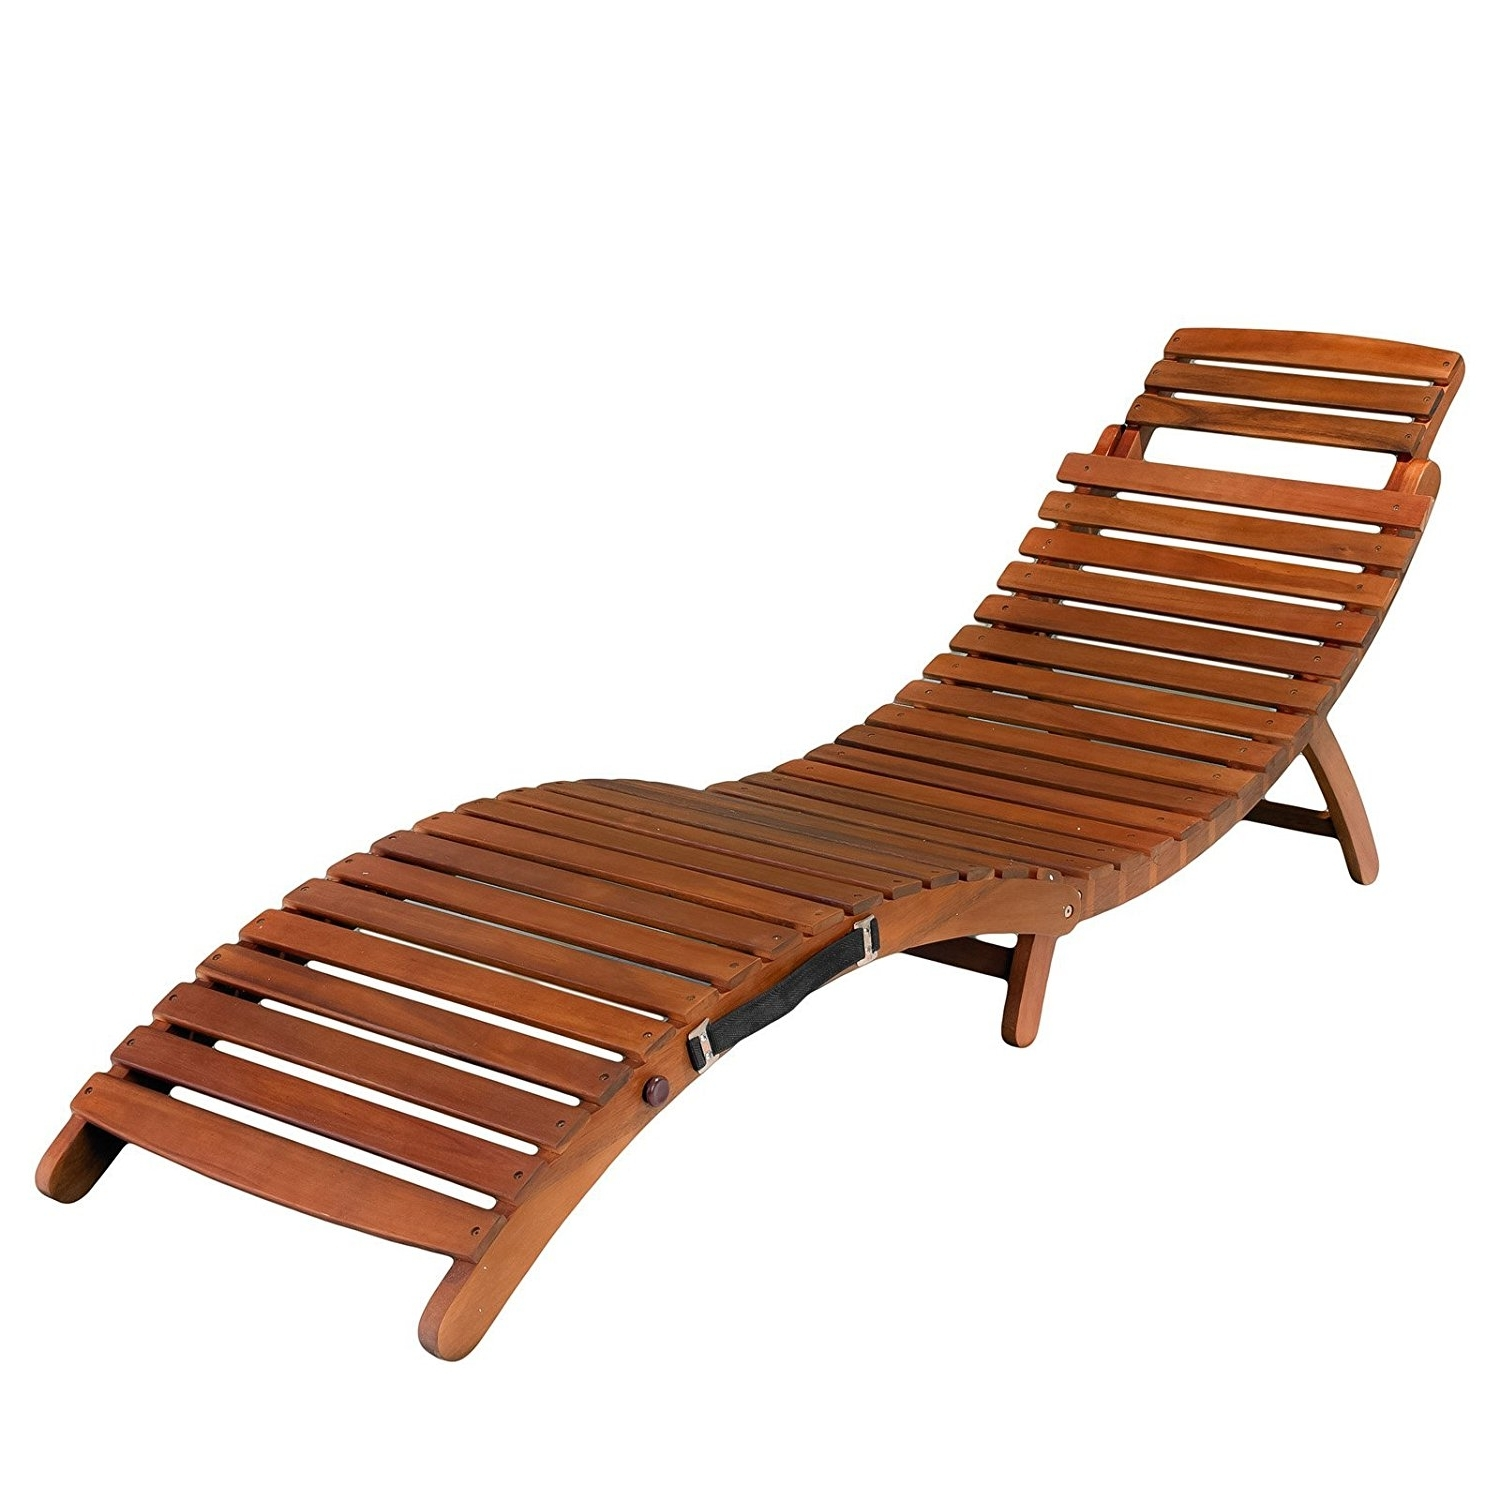 Amazon: Lahaina Outdoor Chaise Lounge: Garden & Outdoor For Widely Used Folding Chaise Lounge Chairs (View 1 of 15)